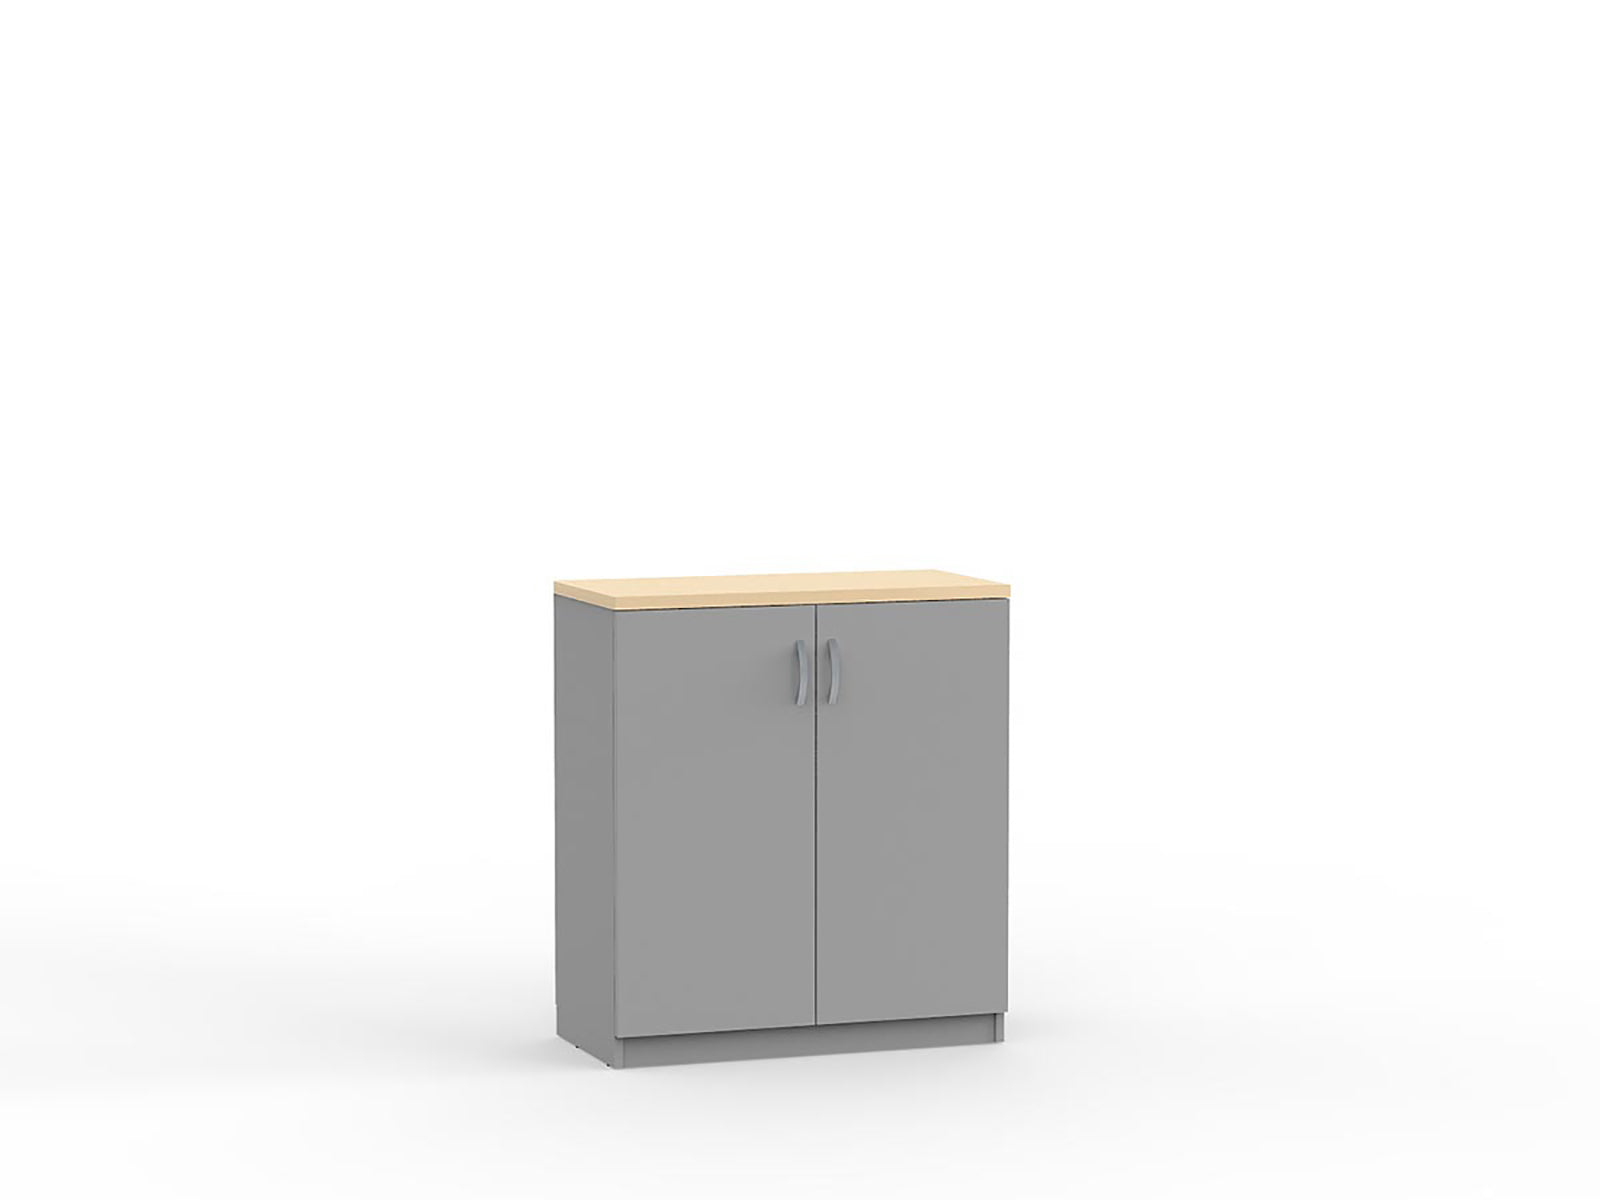 Eko 90cm Cupboard - Workspace Furniture Home and Office Cupboards and Shelves